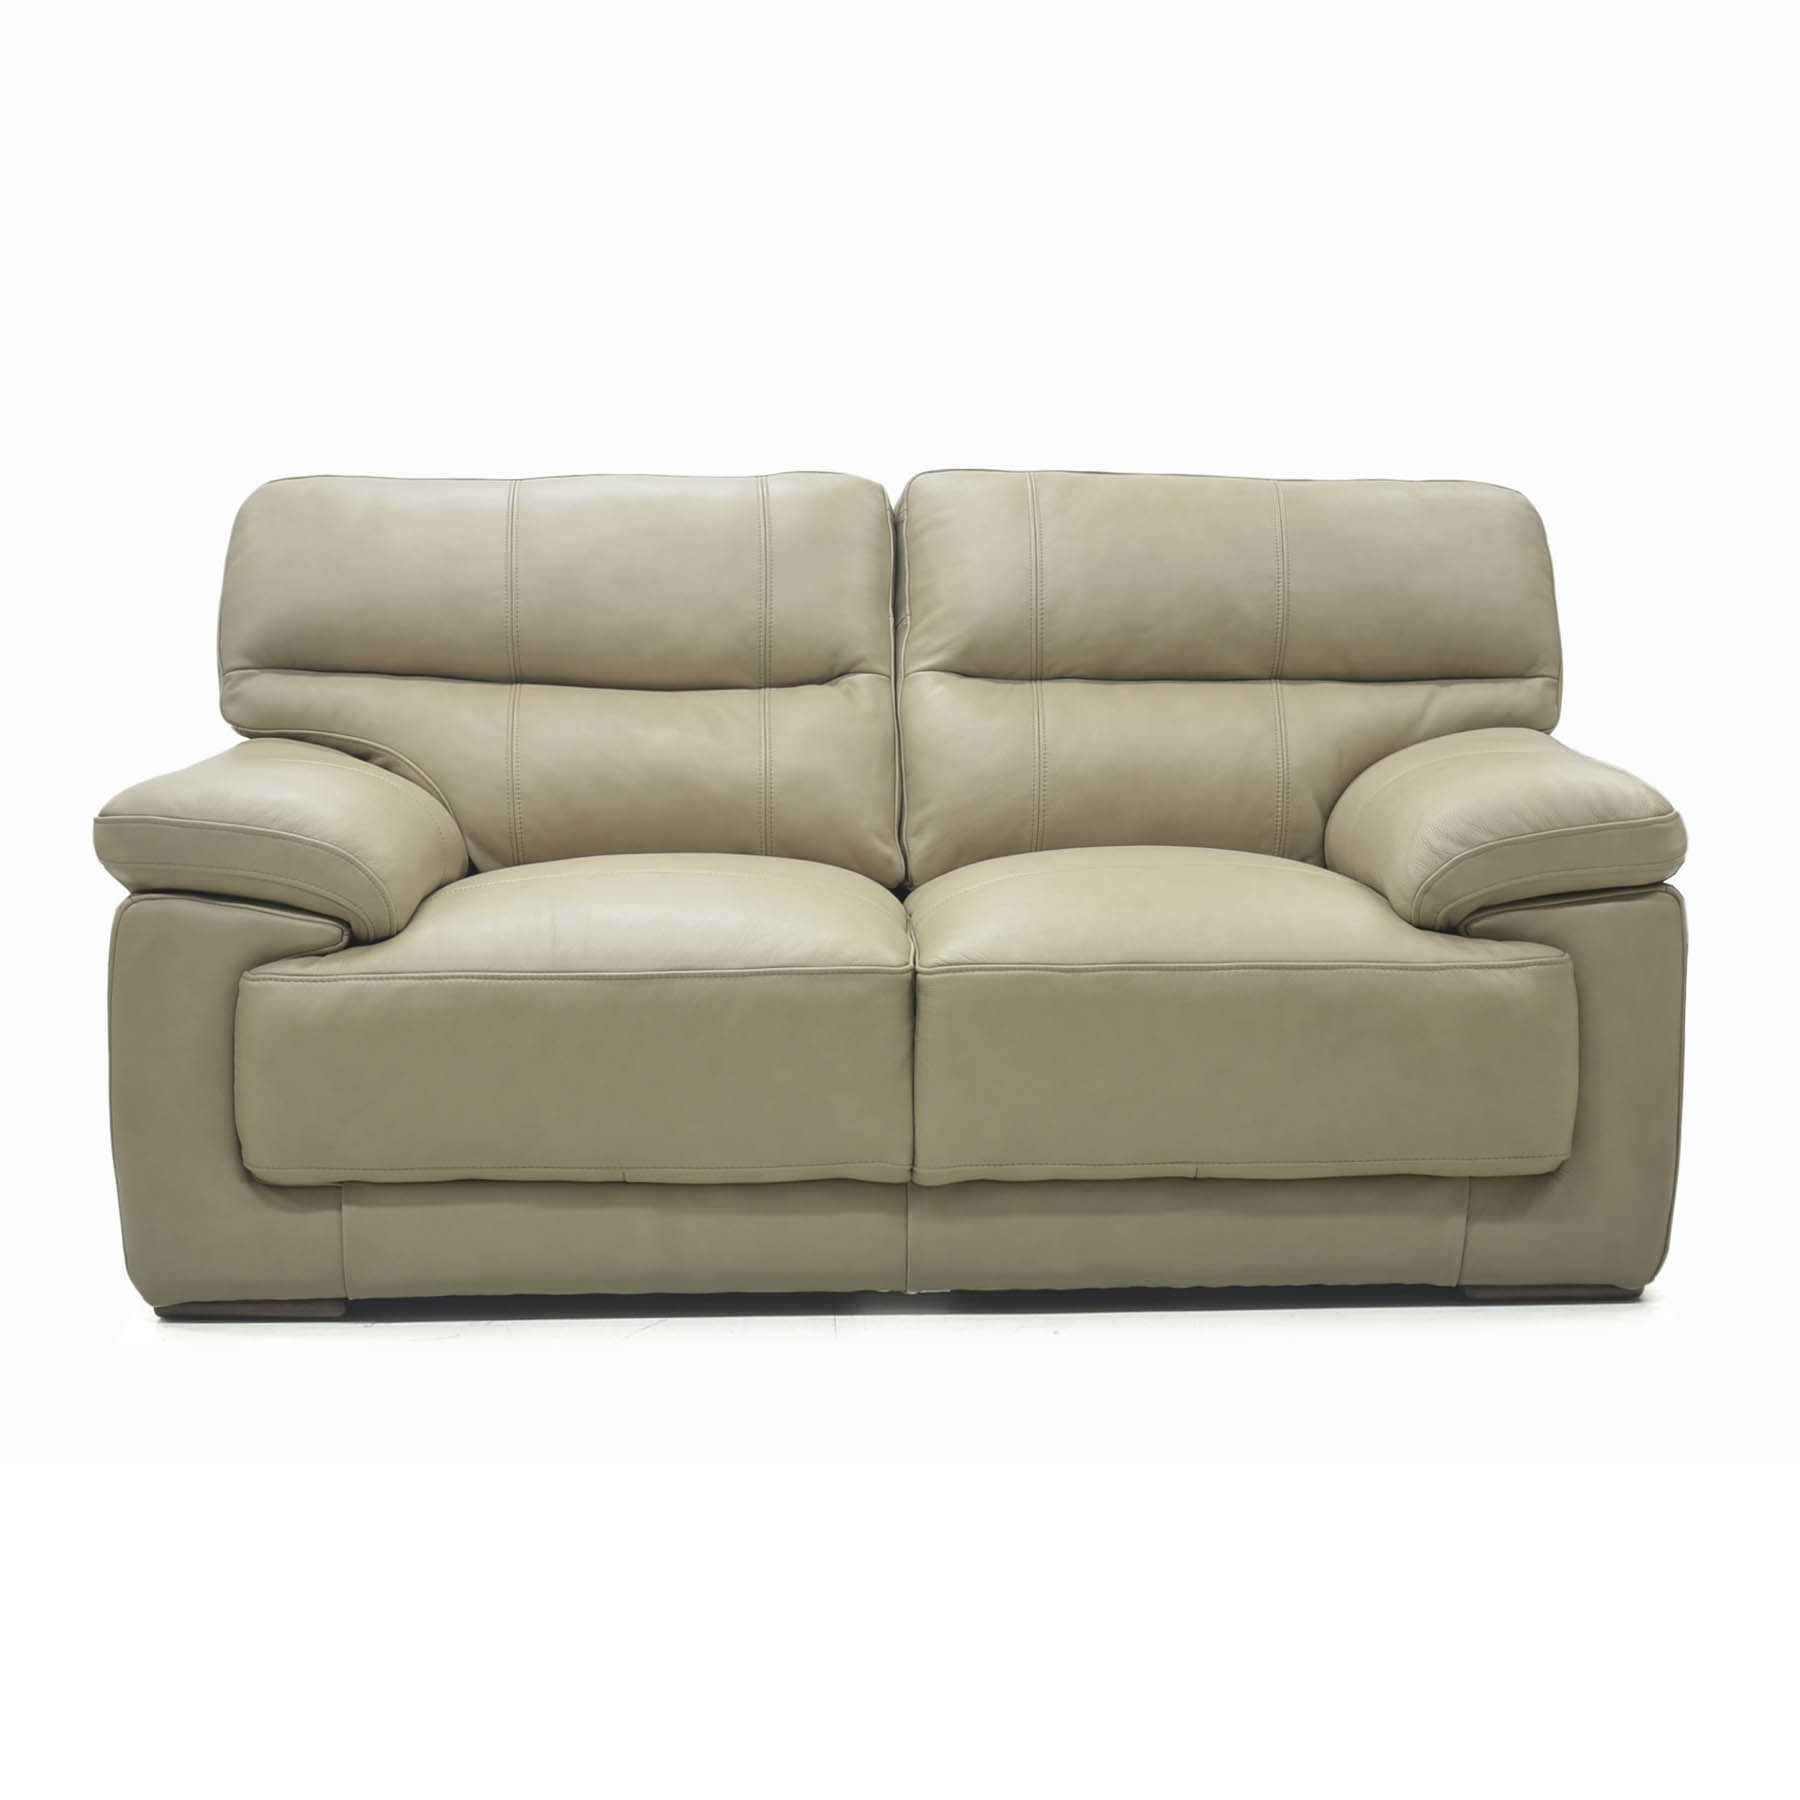 Florence Medium 2 Seater Sofa In Florence Medium Sofas (View 5 of 15)